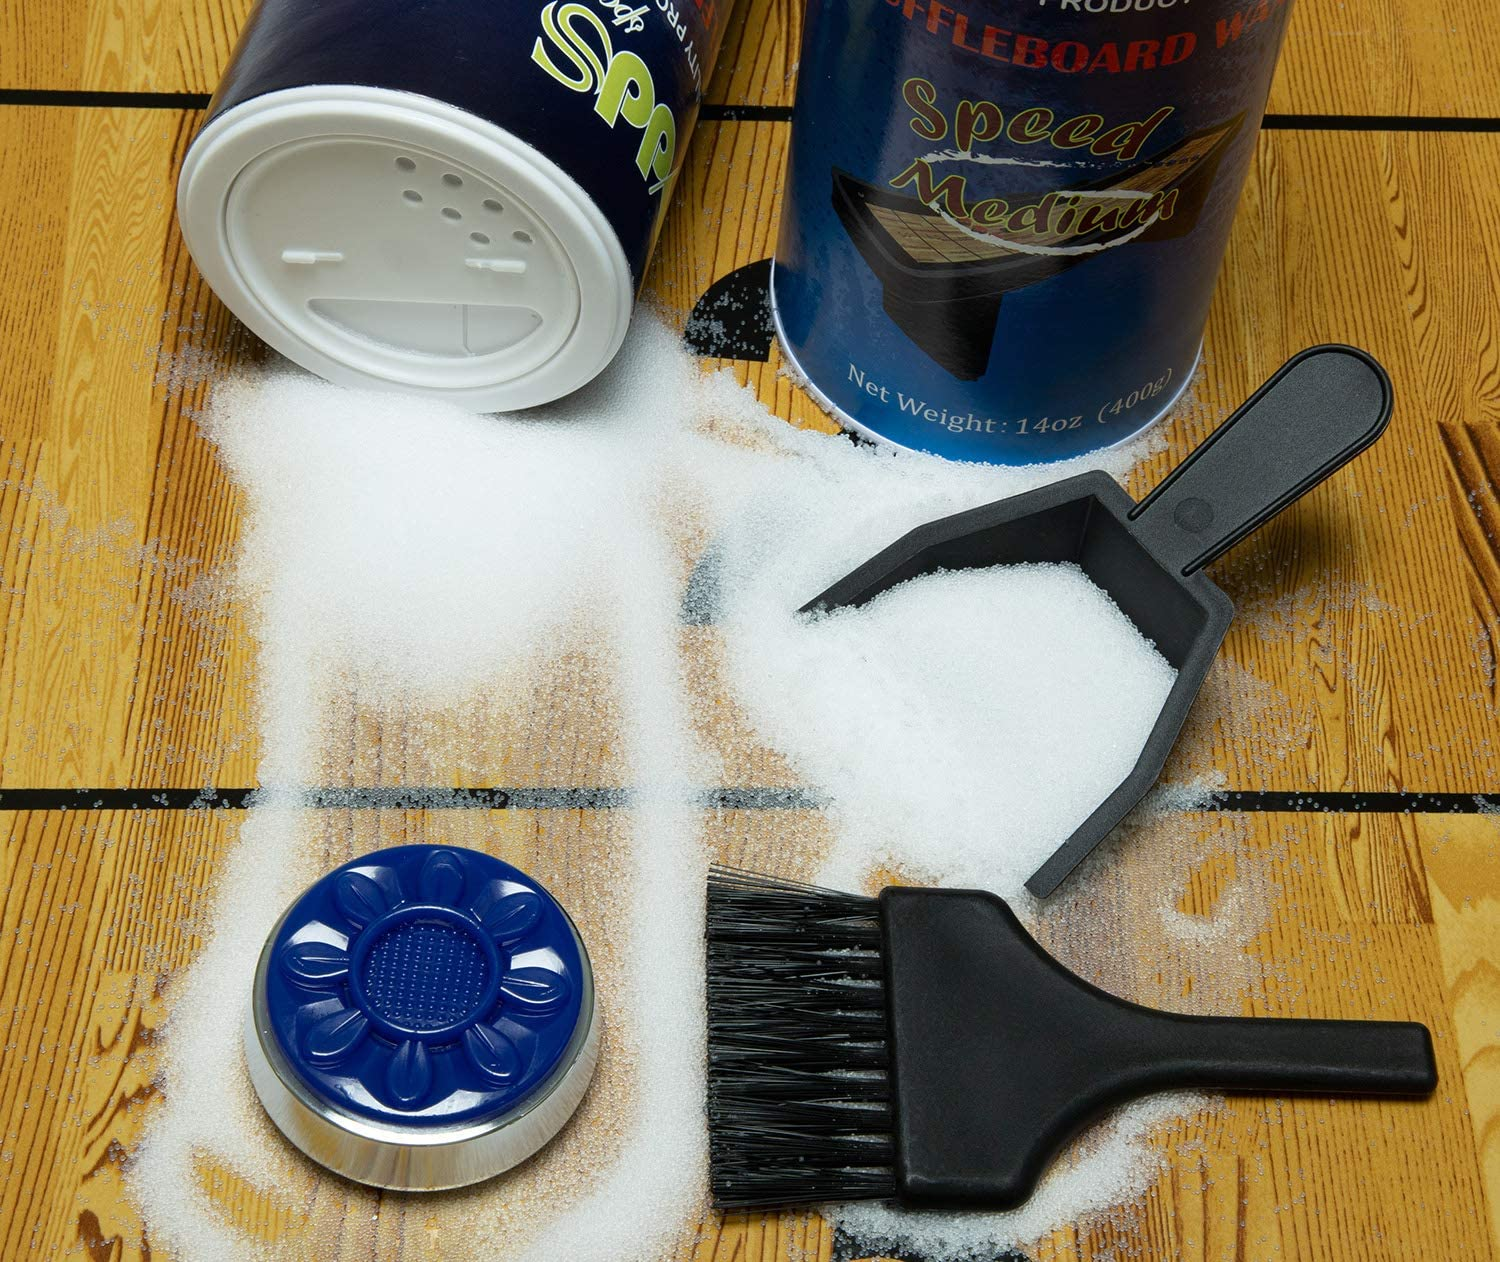 Shuffleboard Powder Wax Come with Mini Brush and Dustpan Perfect Shuffleboard Accessories for Each Player 14oz x 2 Cans